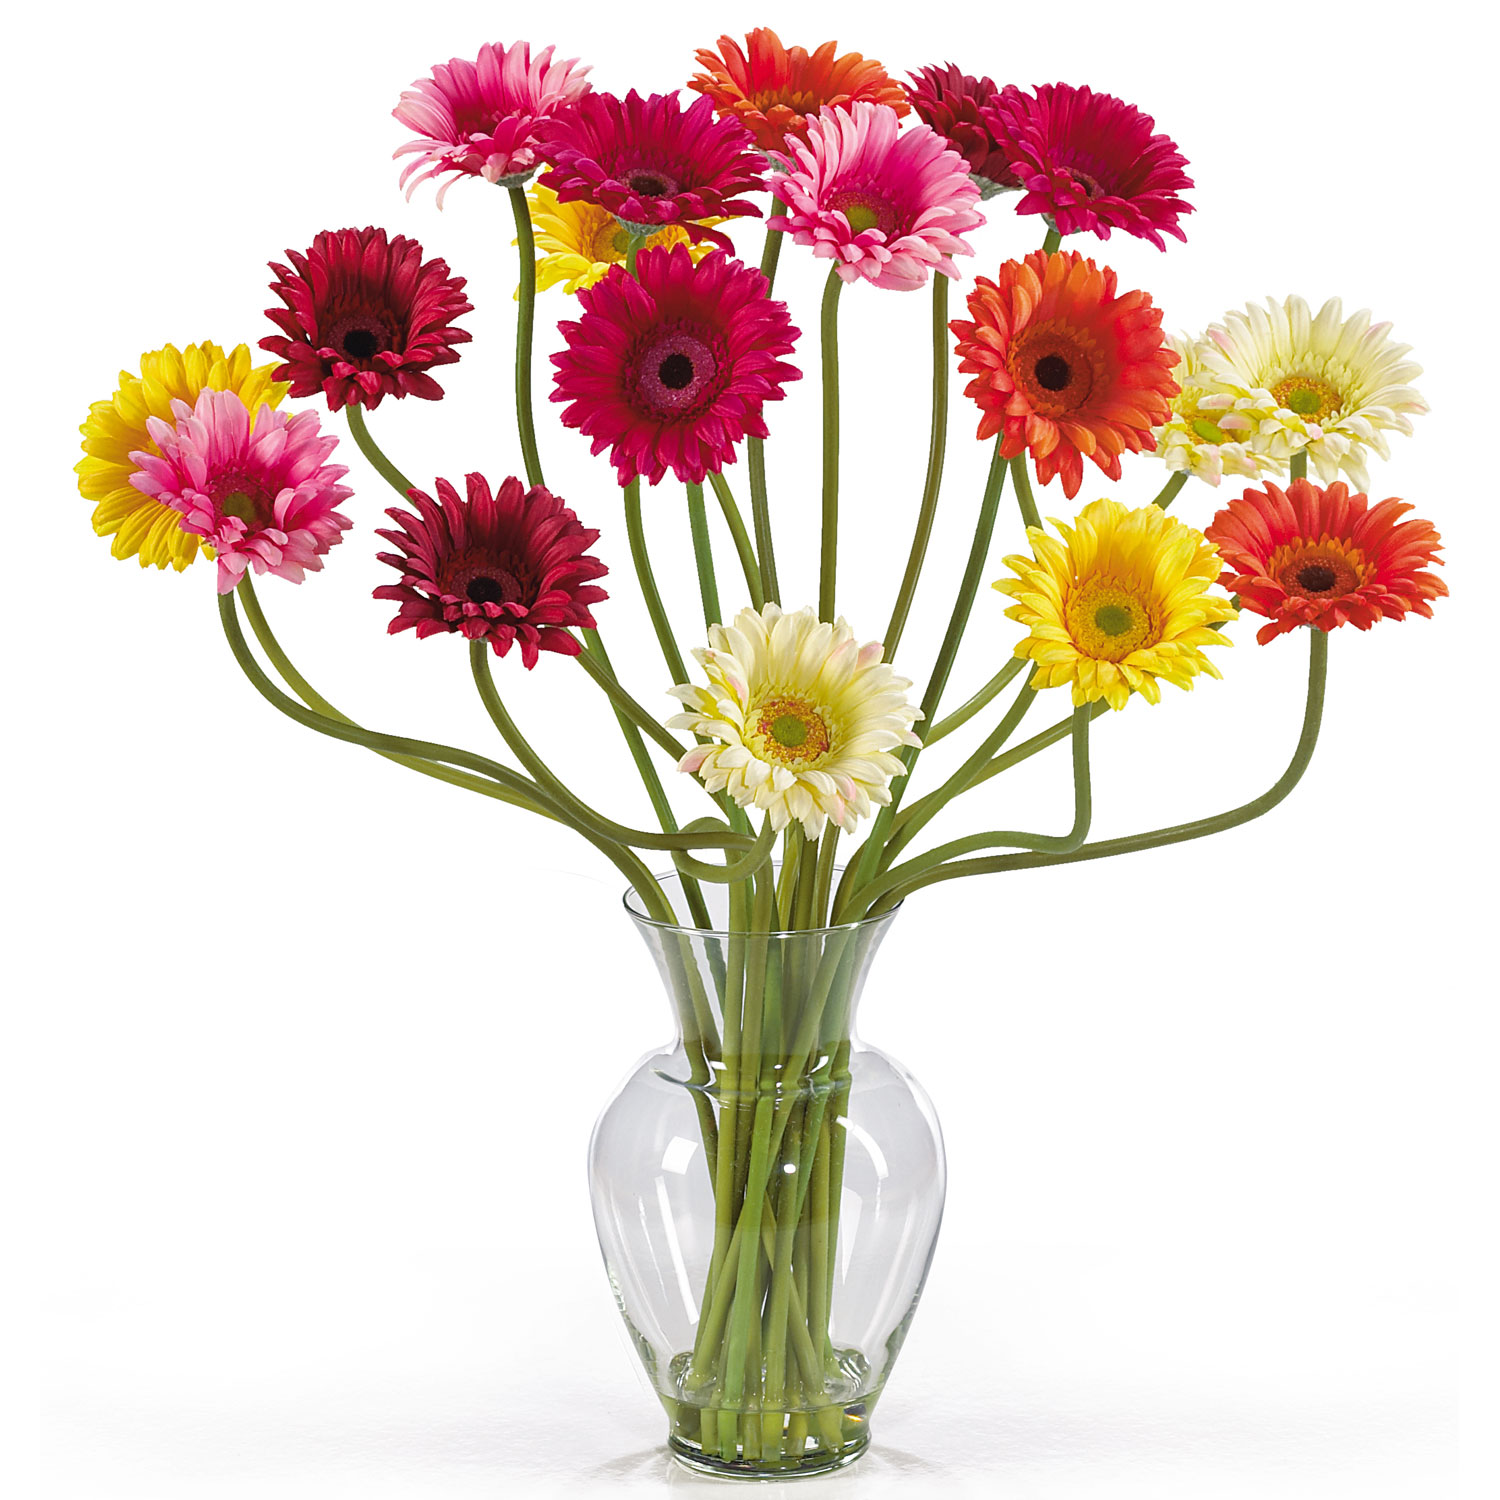 Gerbera daisy silk flower arrangement beautiful flowers izmirmasajfo